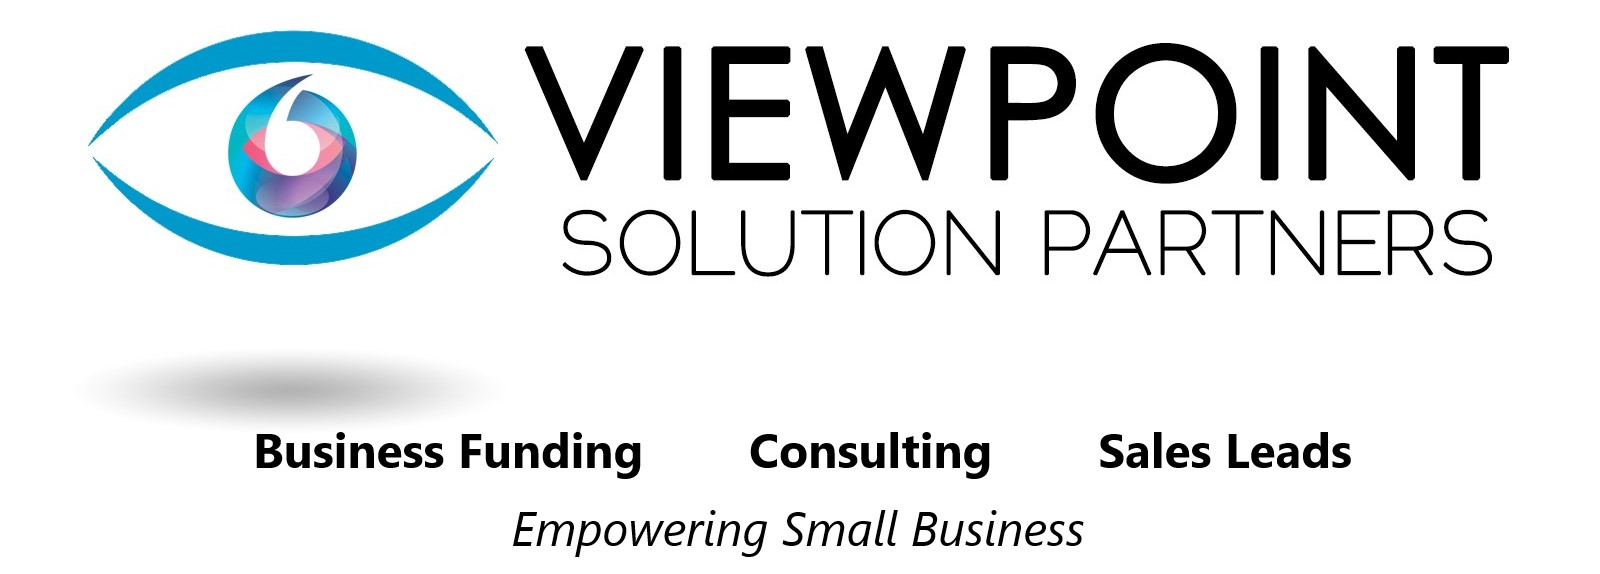 Viewpoint Solution Partners